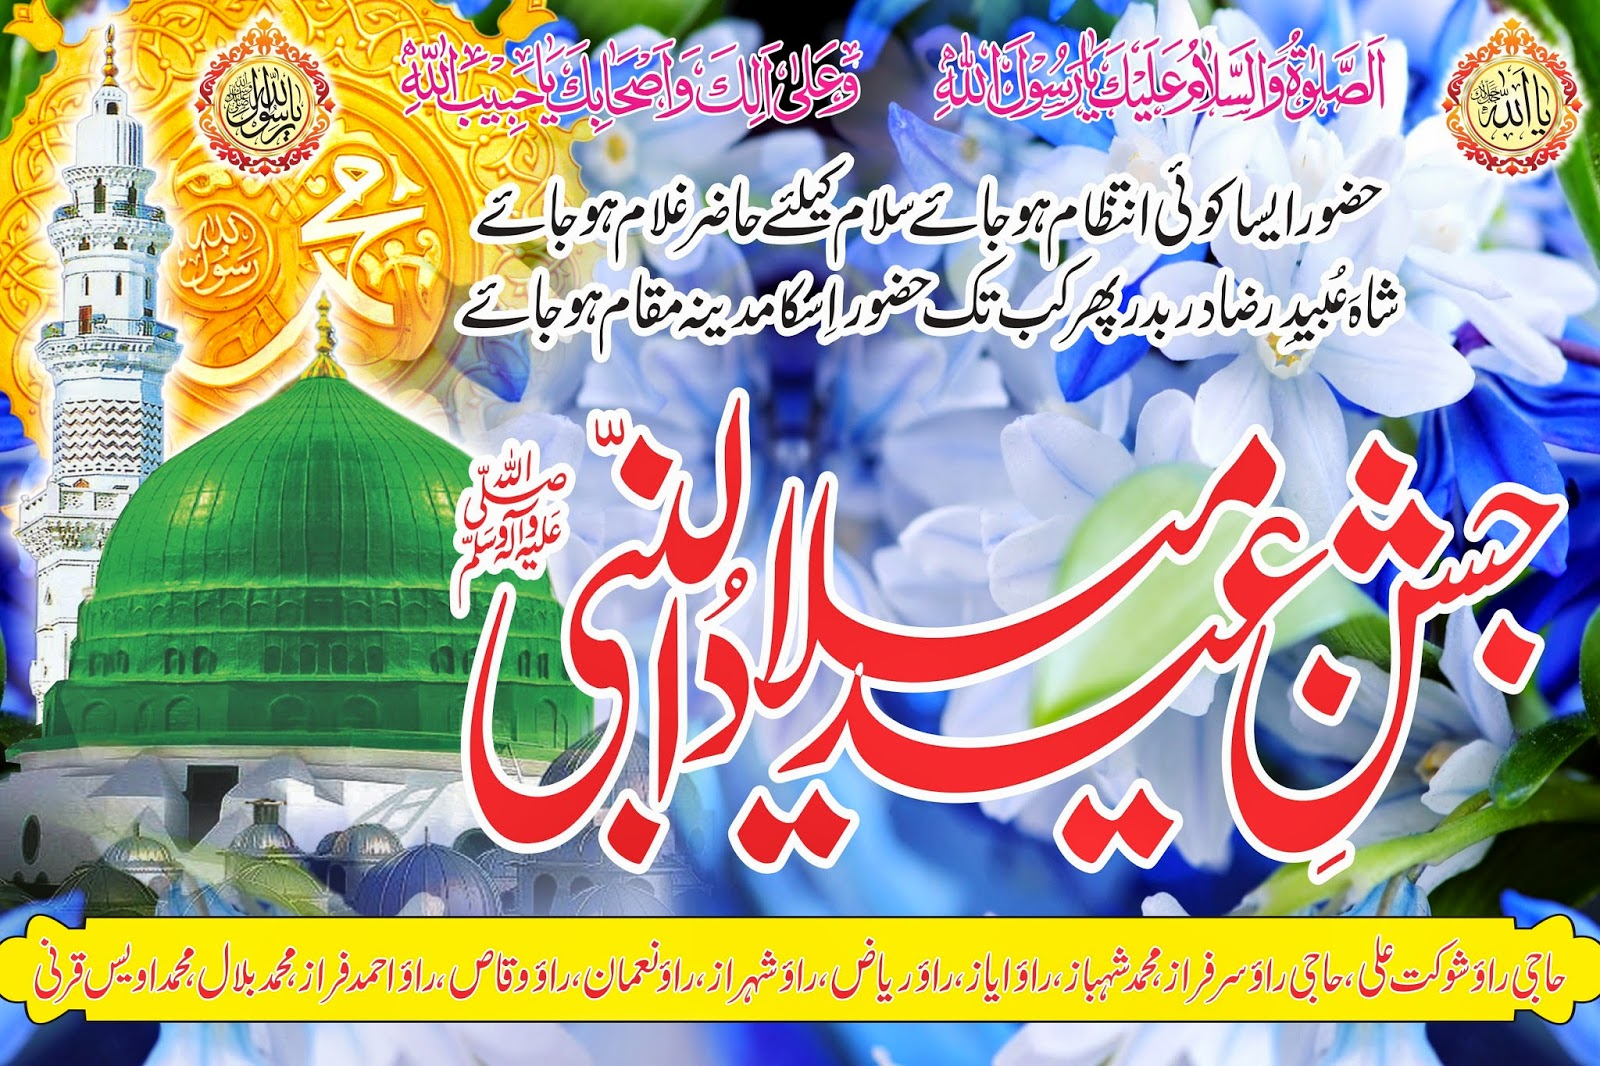 Rabi ul awal design madani graphics for 12 rabi ul awal 2014 decoration